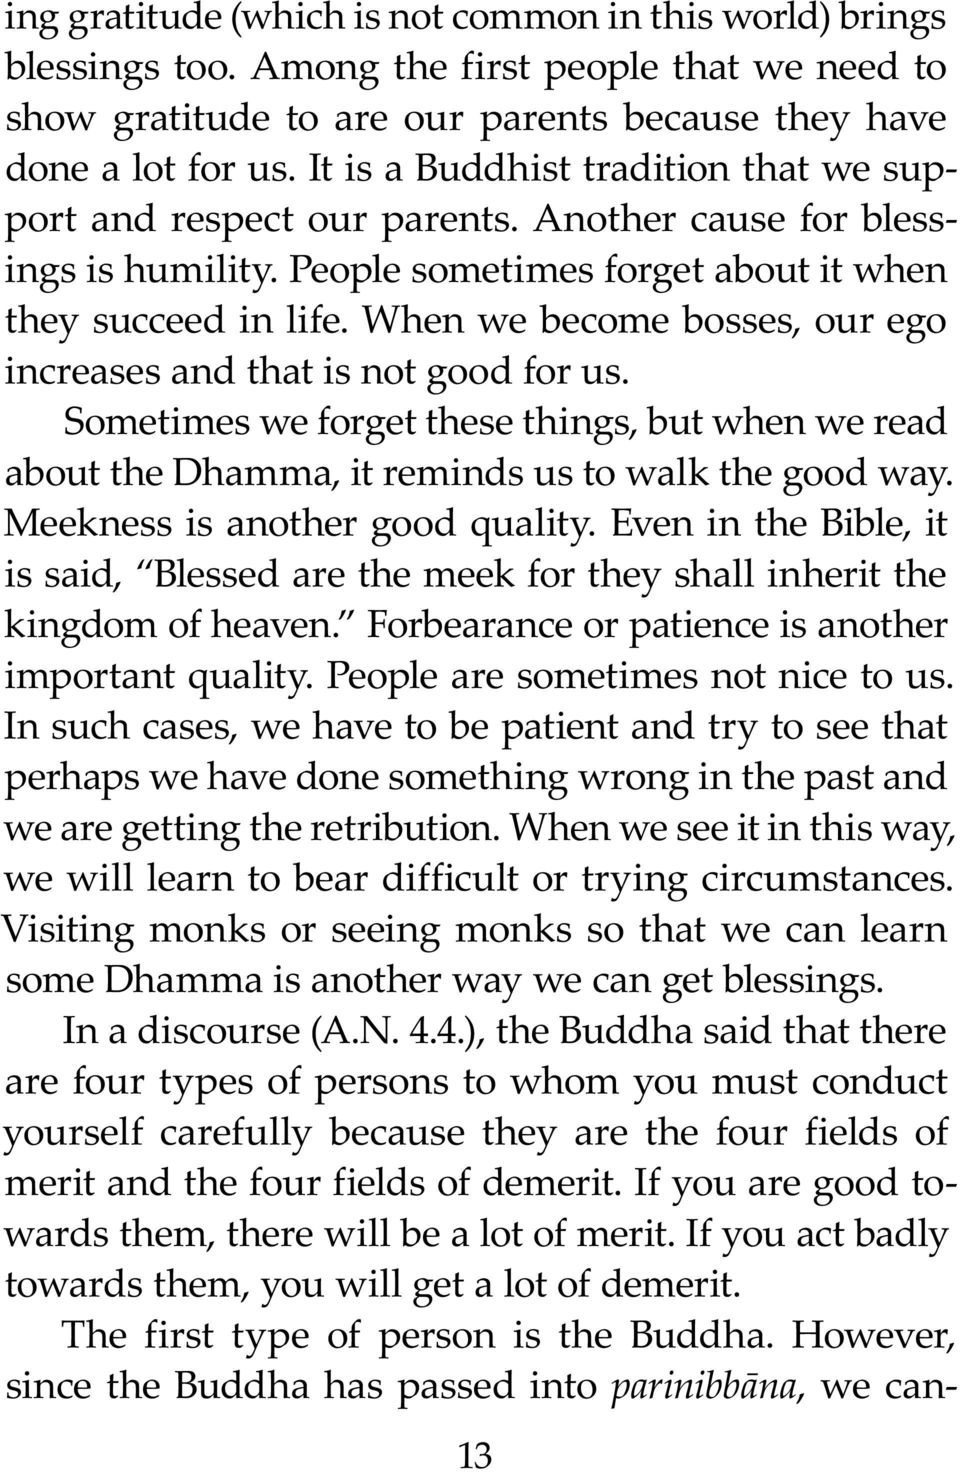 When we become bosses, our ego increases and that is not good for us. Sometimes we forget these things, but when we read about the Dhamma, it reminds us to walk the good way.